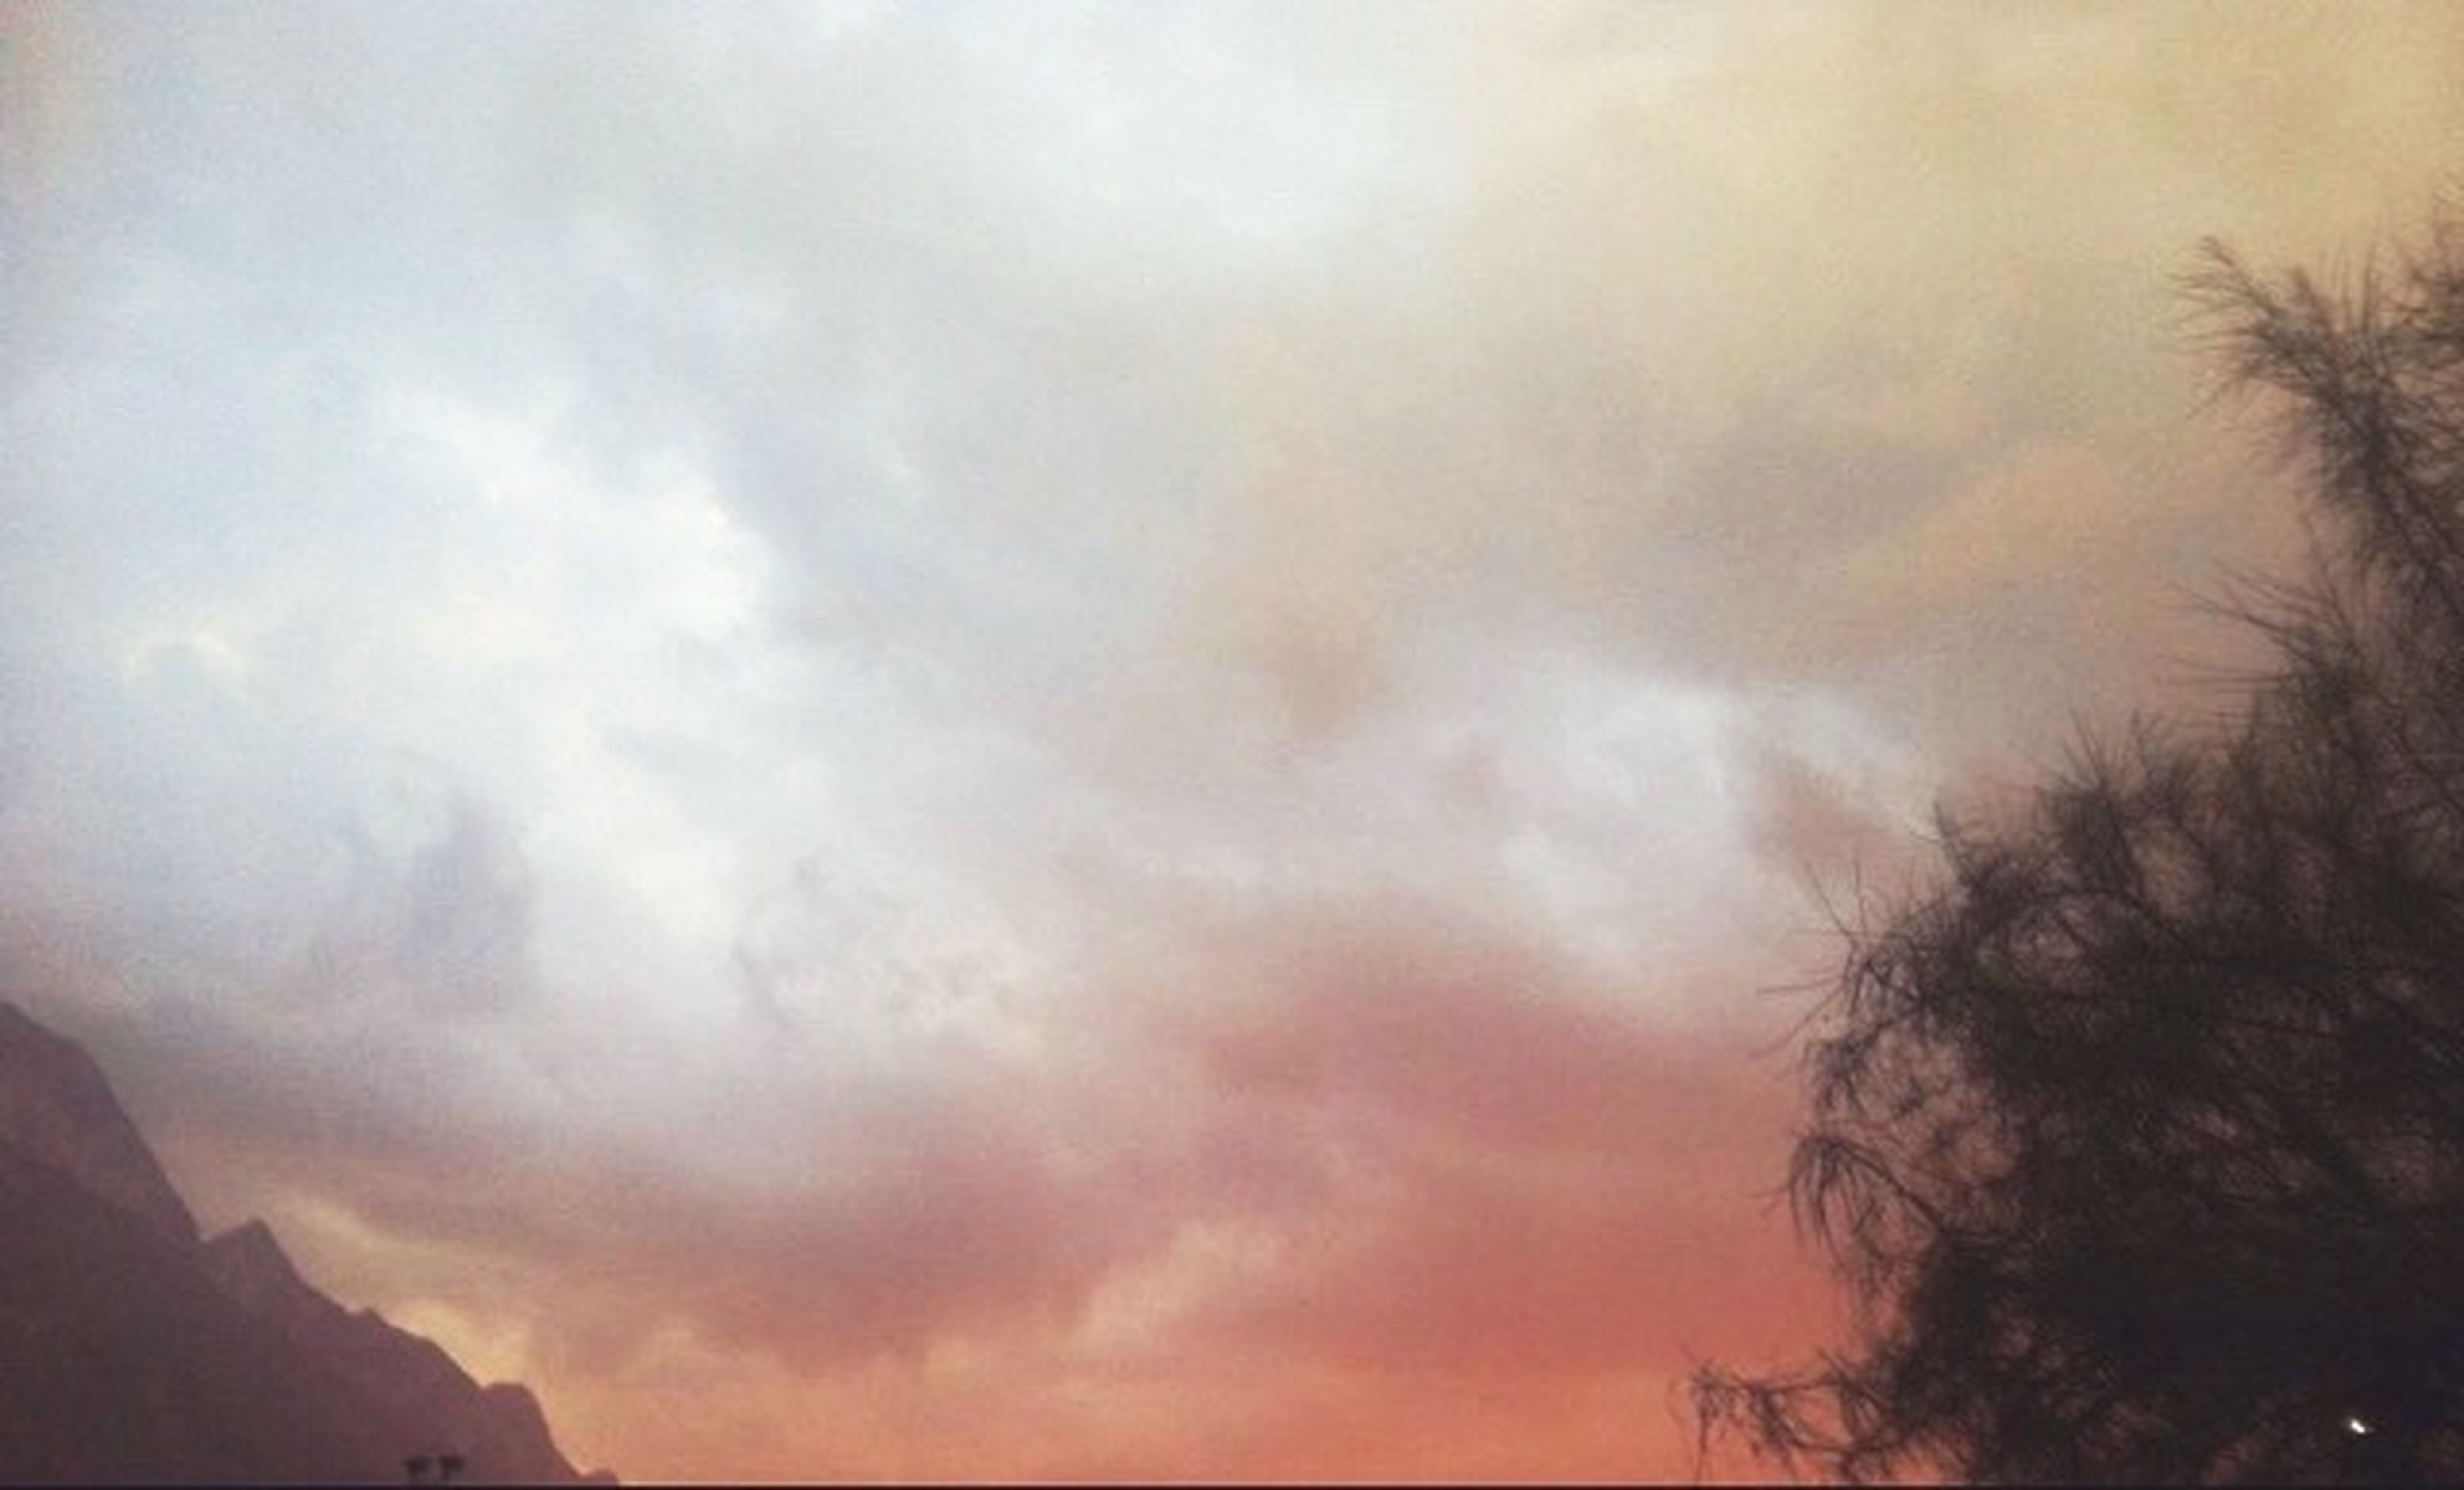 sky, cloud - sky, low angle view, cloudy, silhouette, weather, overcast, beauty in nature, tranquility, scenics, nature, tree, tranquil scene, dusk, storm cloud, sunset, cloud, dramatic sky, cloudscape, atmospheric mood